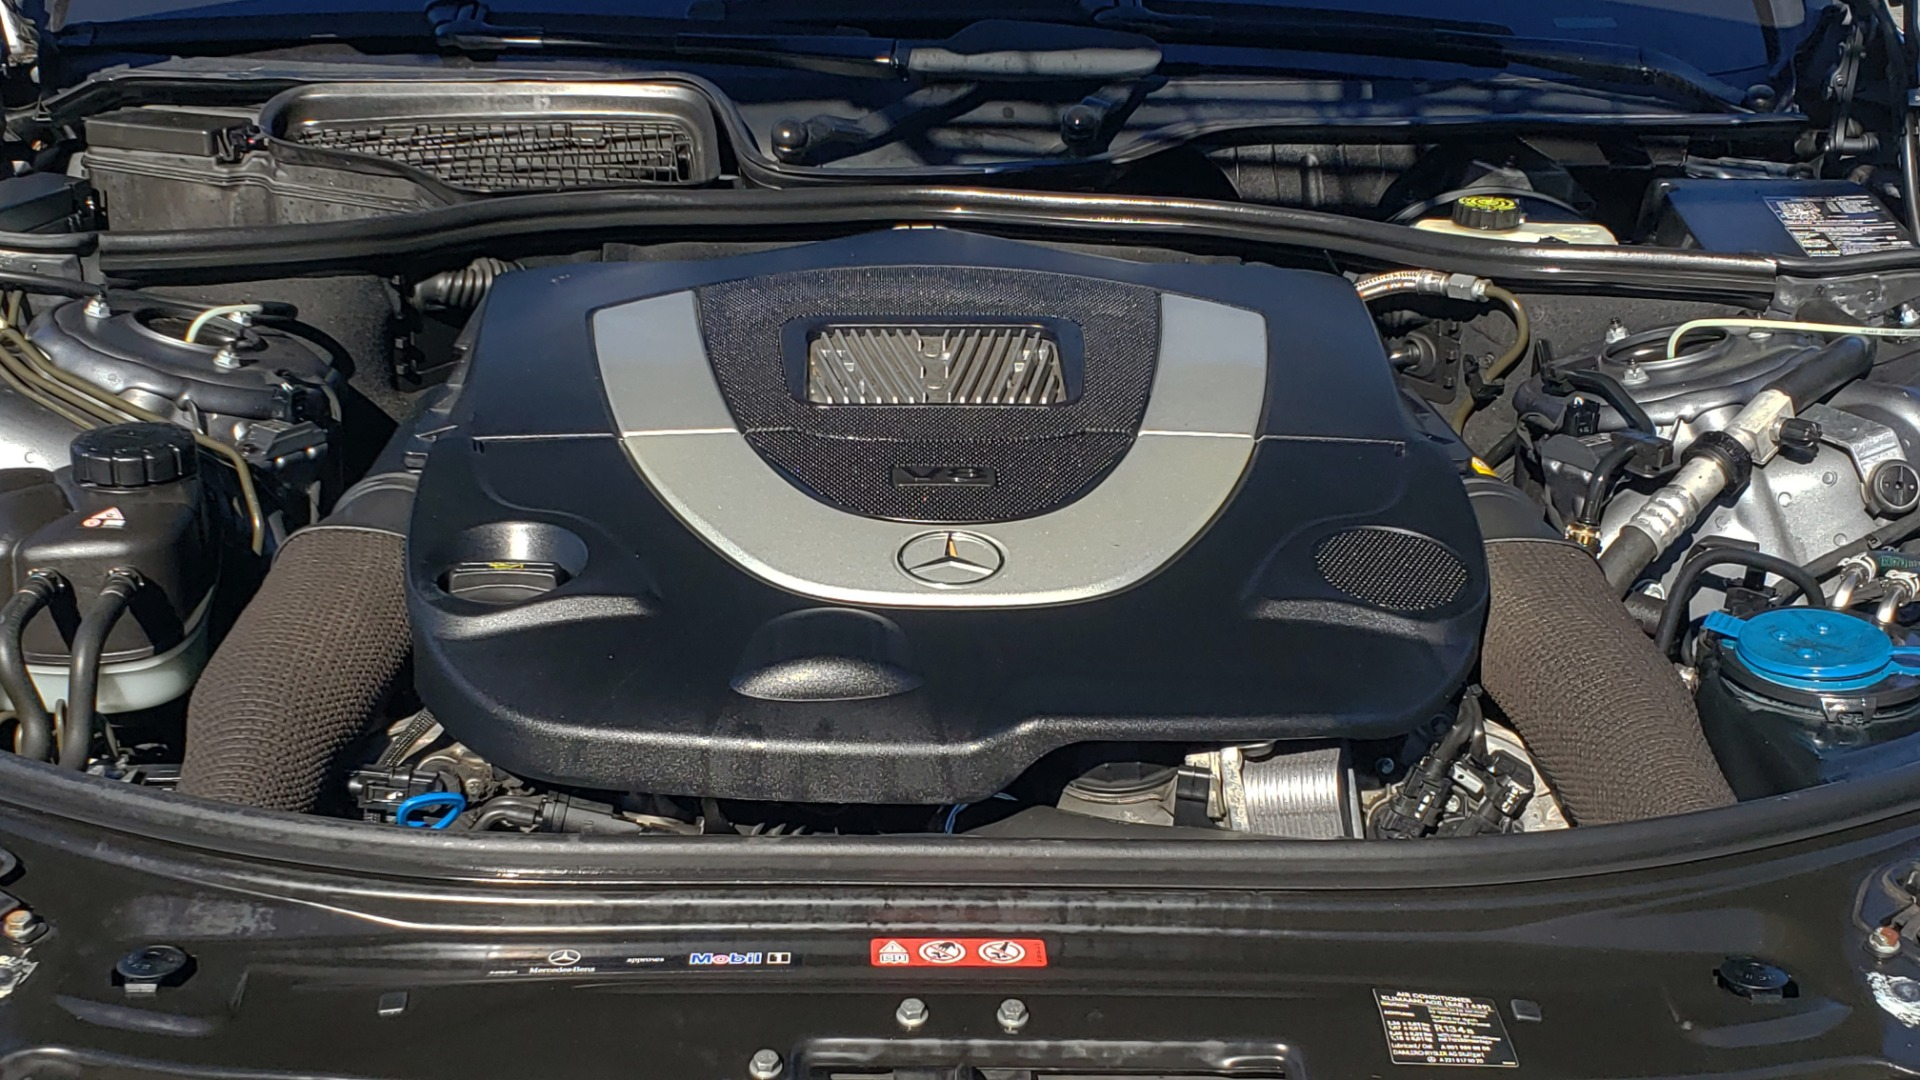 Used 2007 Mercedes-Benz S-CLASS S550 5.5L V8 / LWB / PREM 2 / NAV / SUNROOF / KEYLESS-GO for sale Sold at Formula Imports in Charlotte NC 28227 13